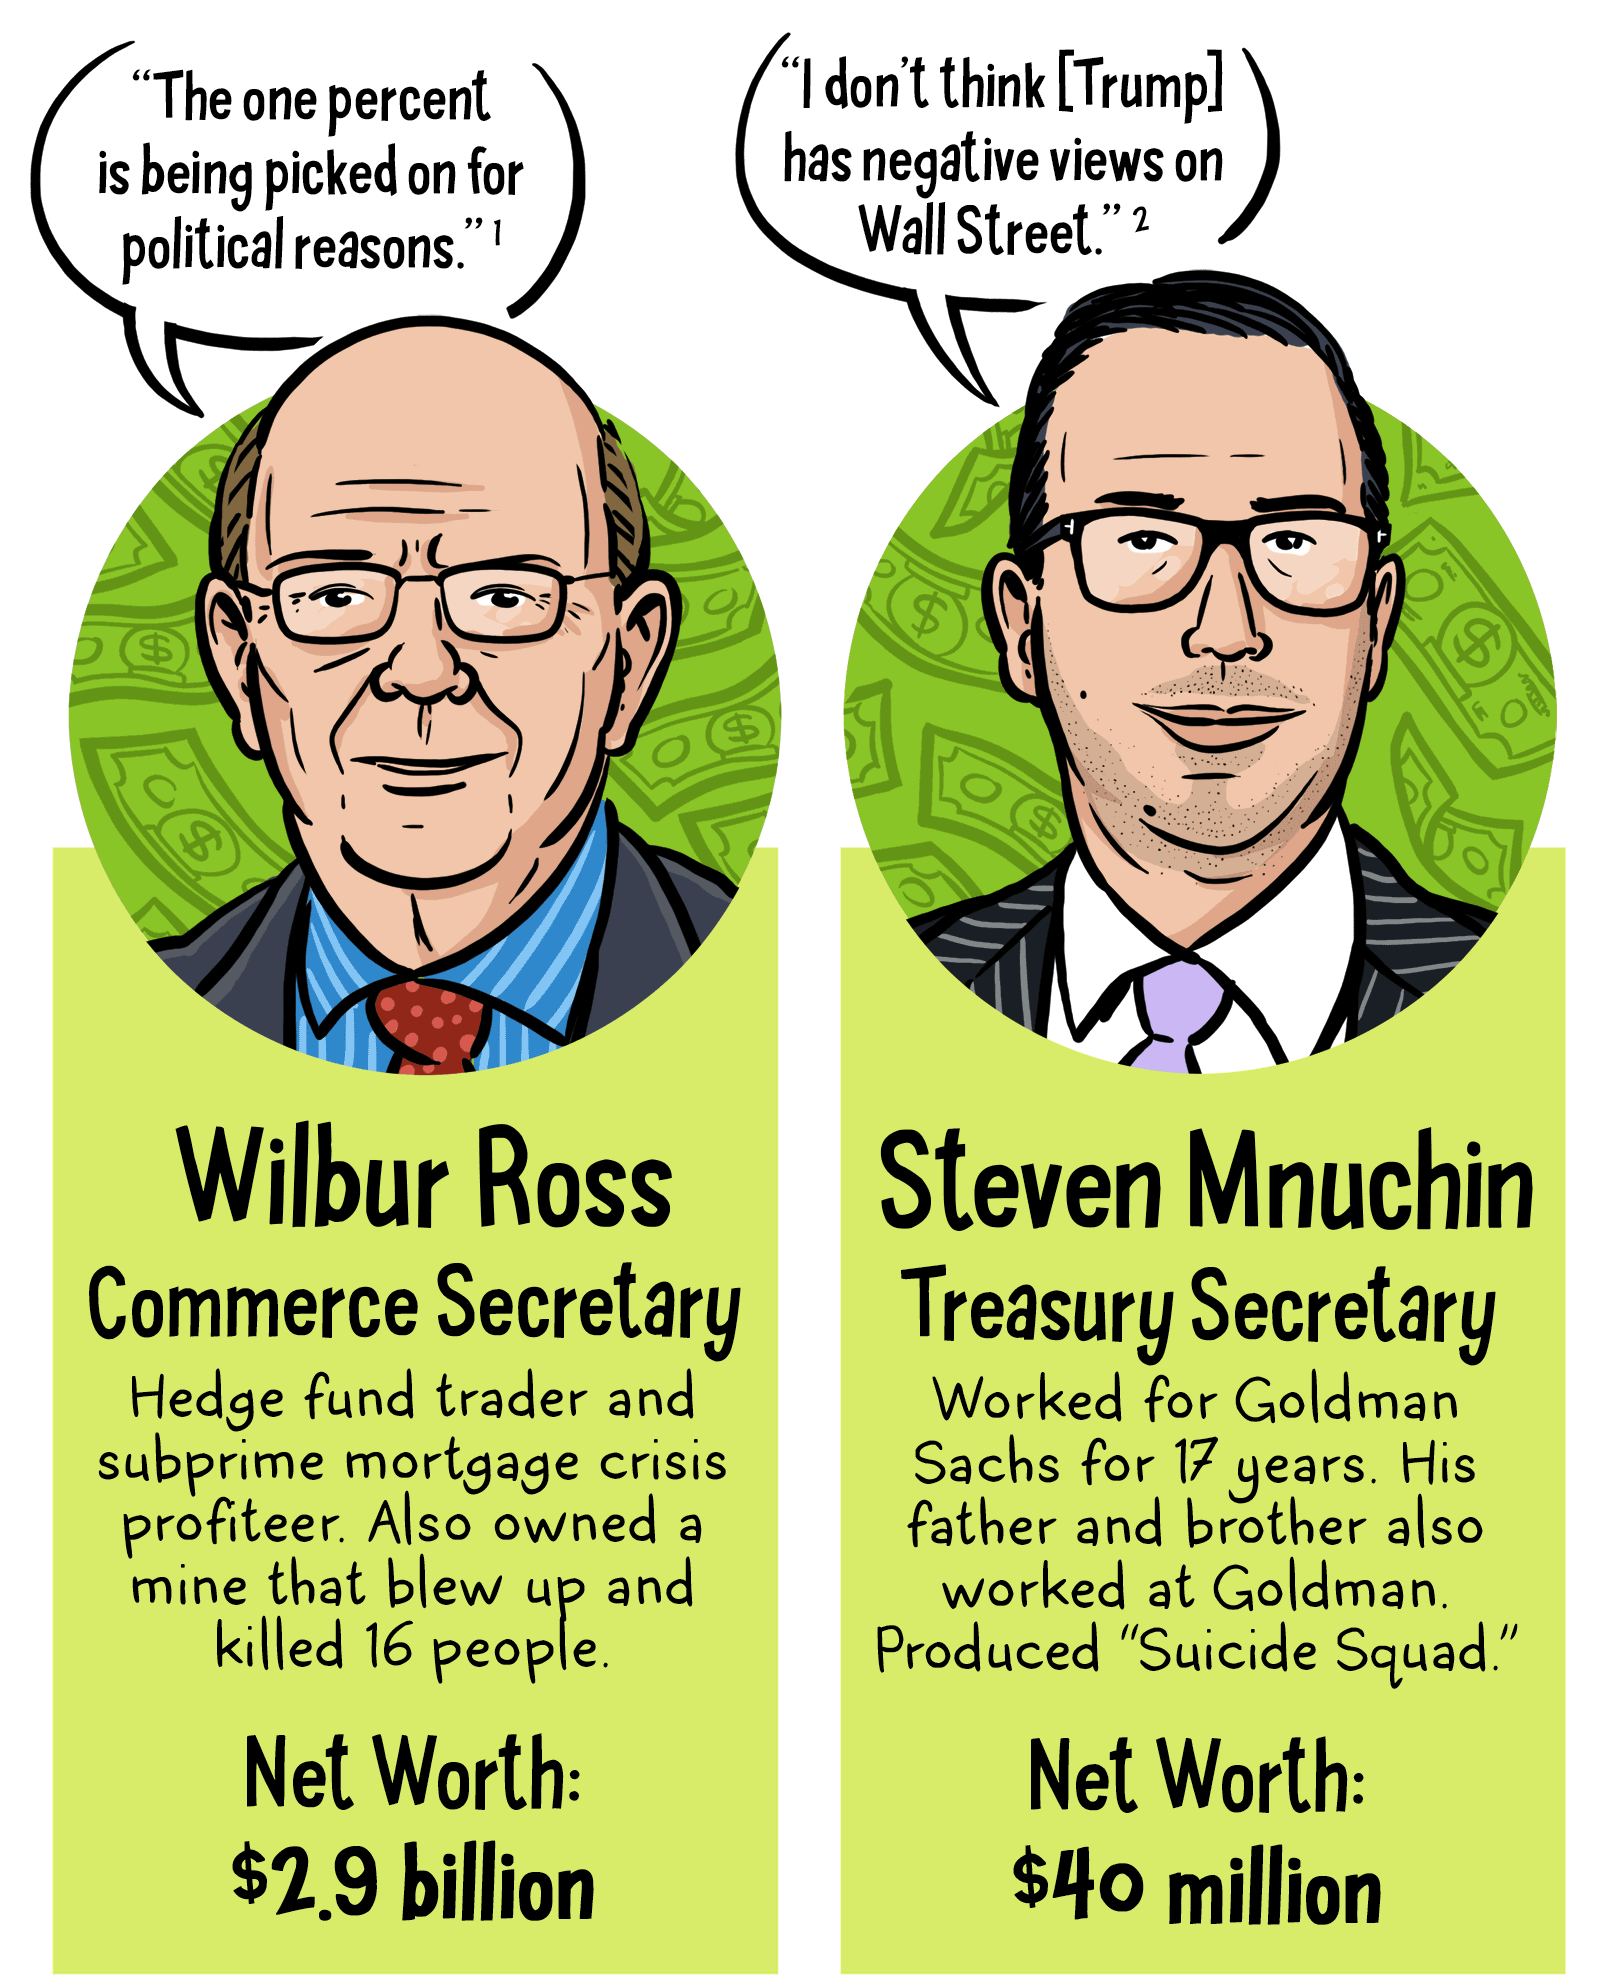 Meet a Few of Trump's Super Rich Cabinet Picks - by Andy Warner